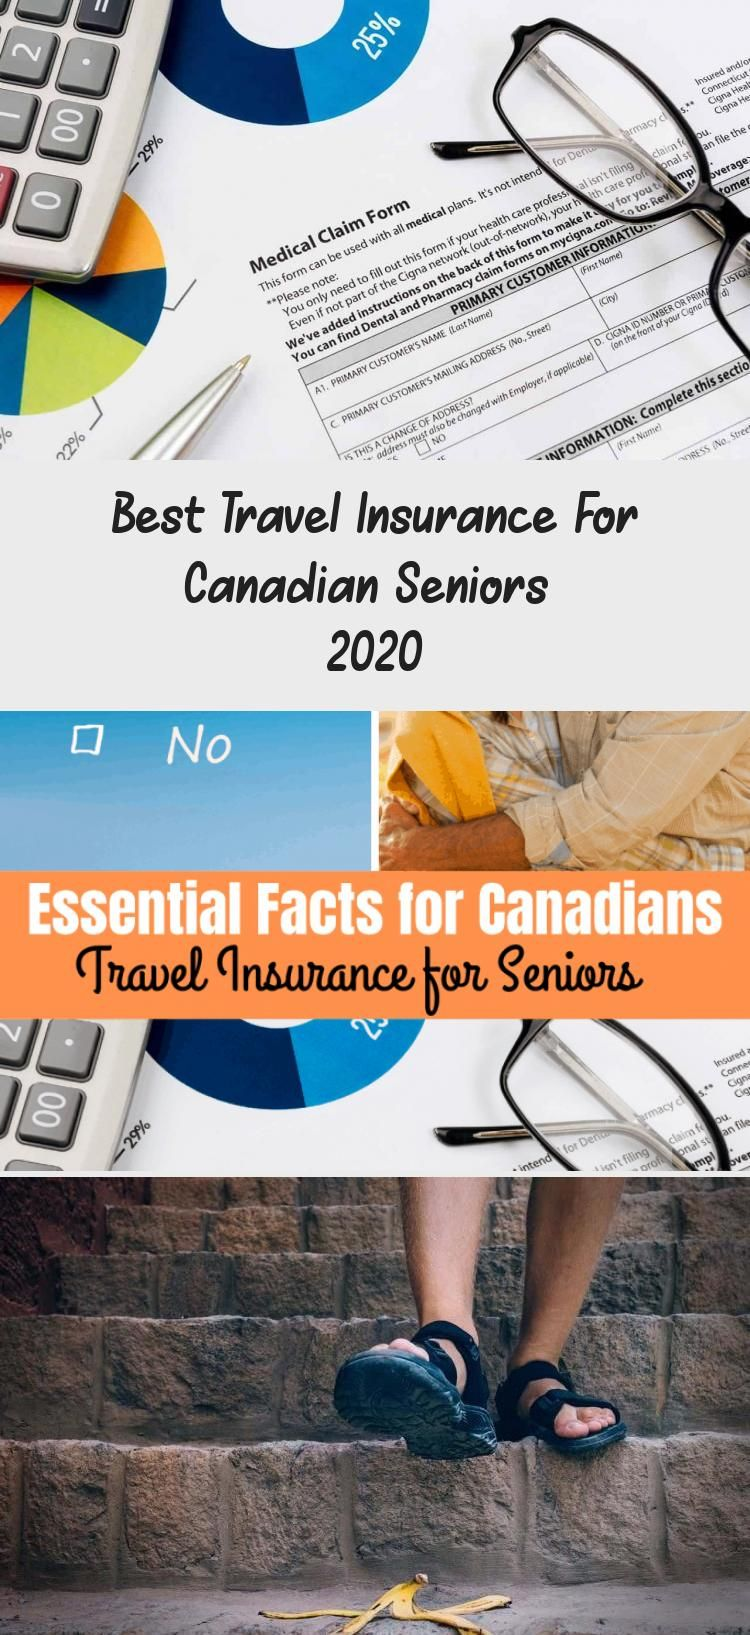 Getting the best travel insurance is so important